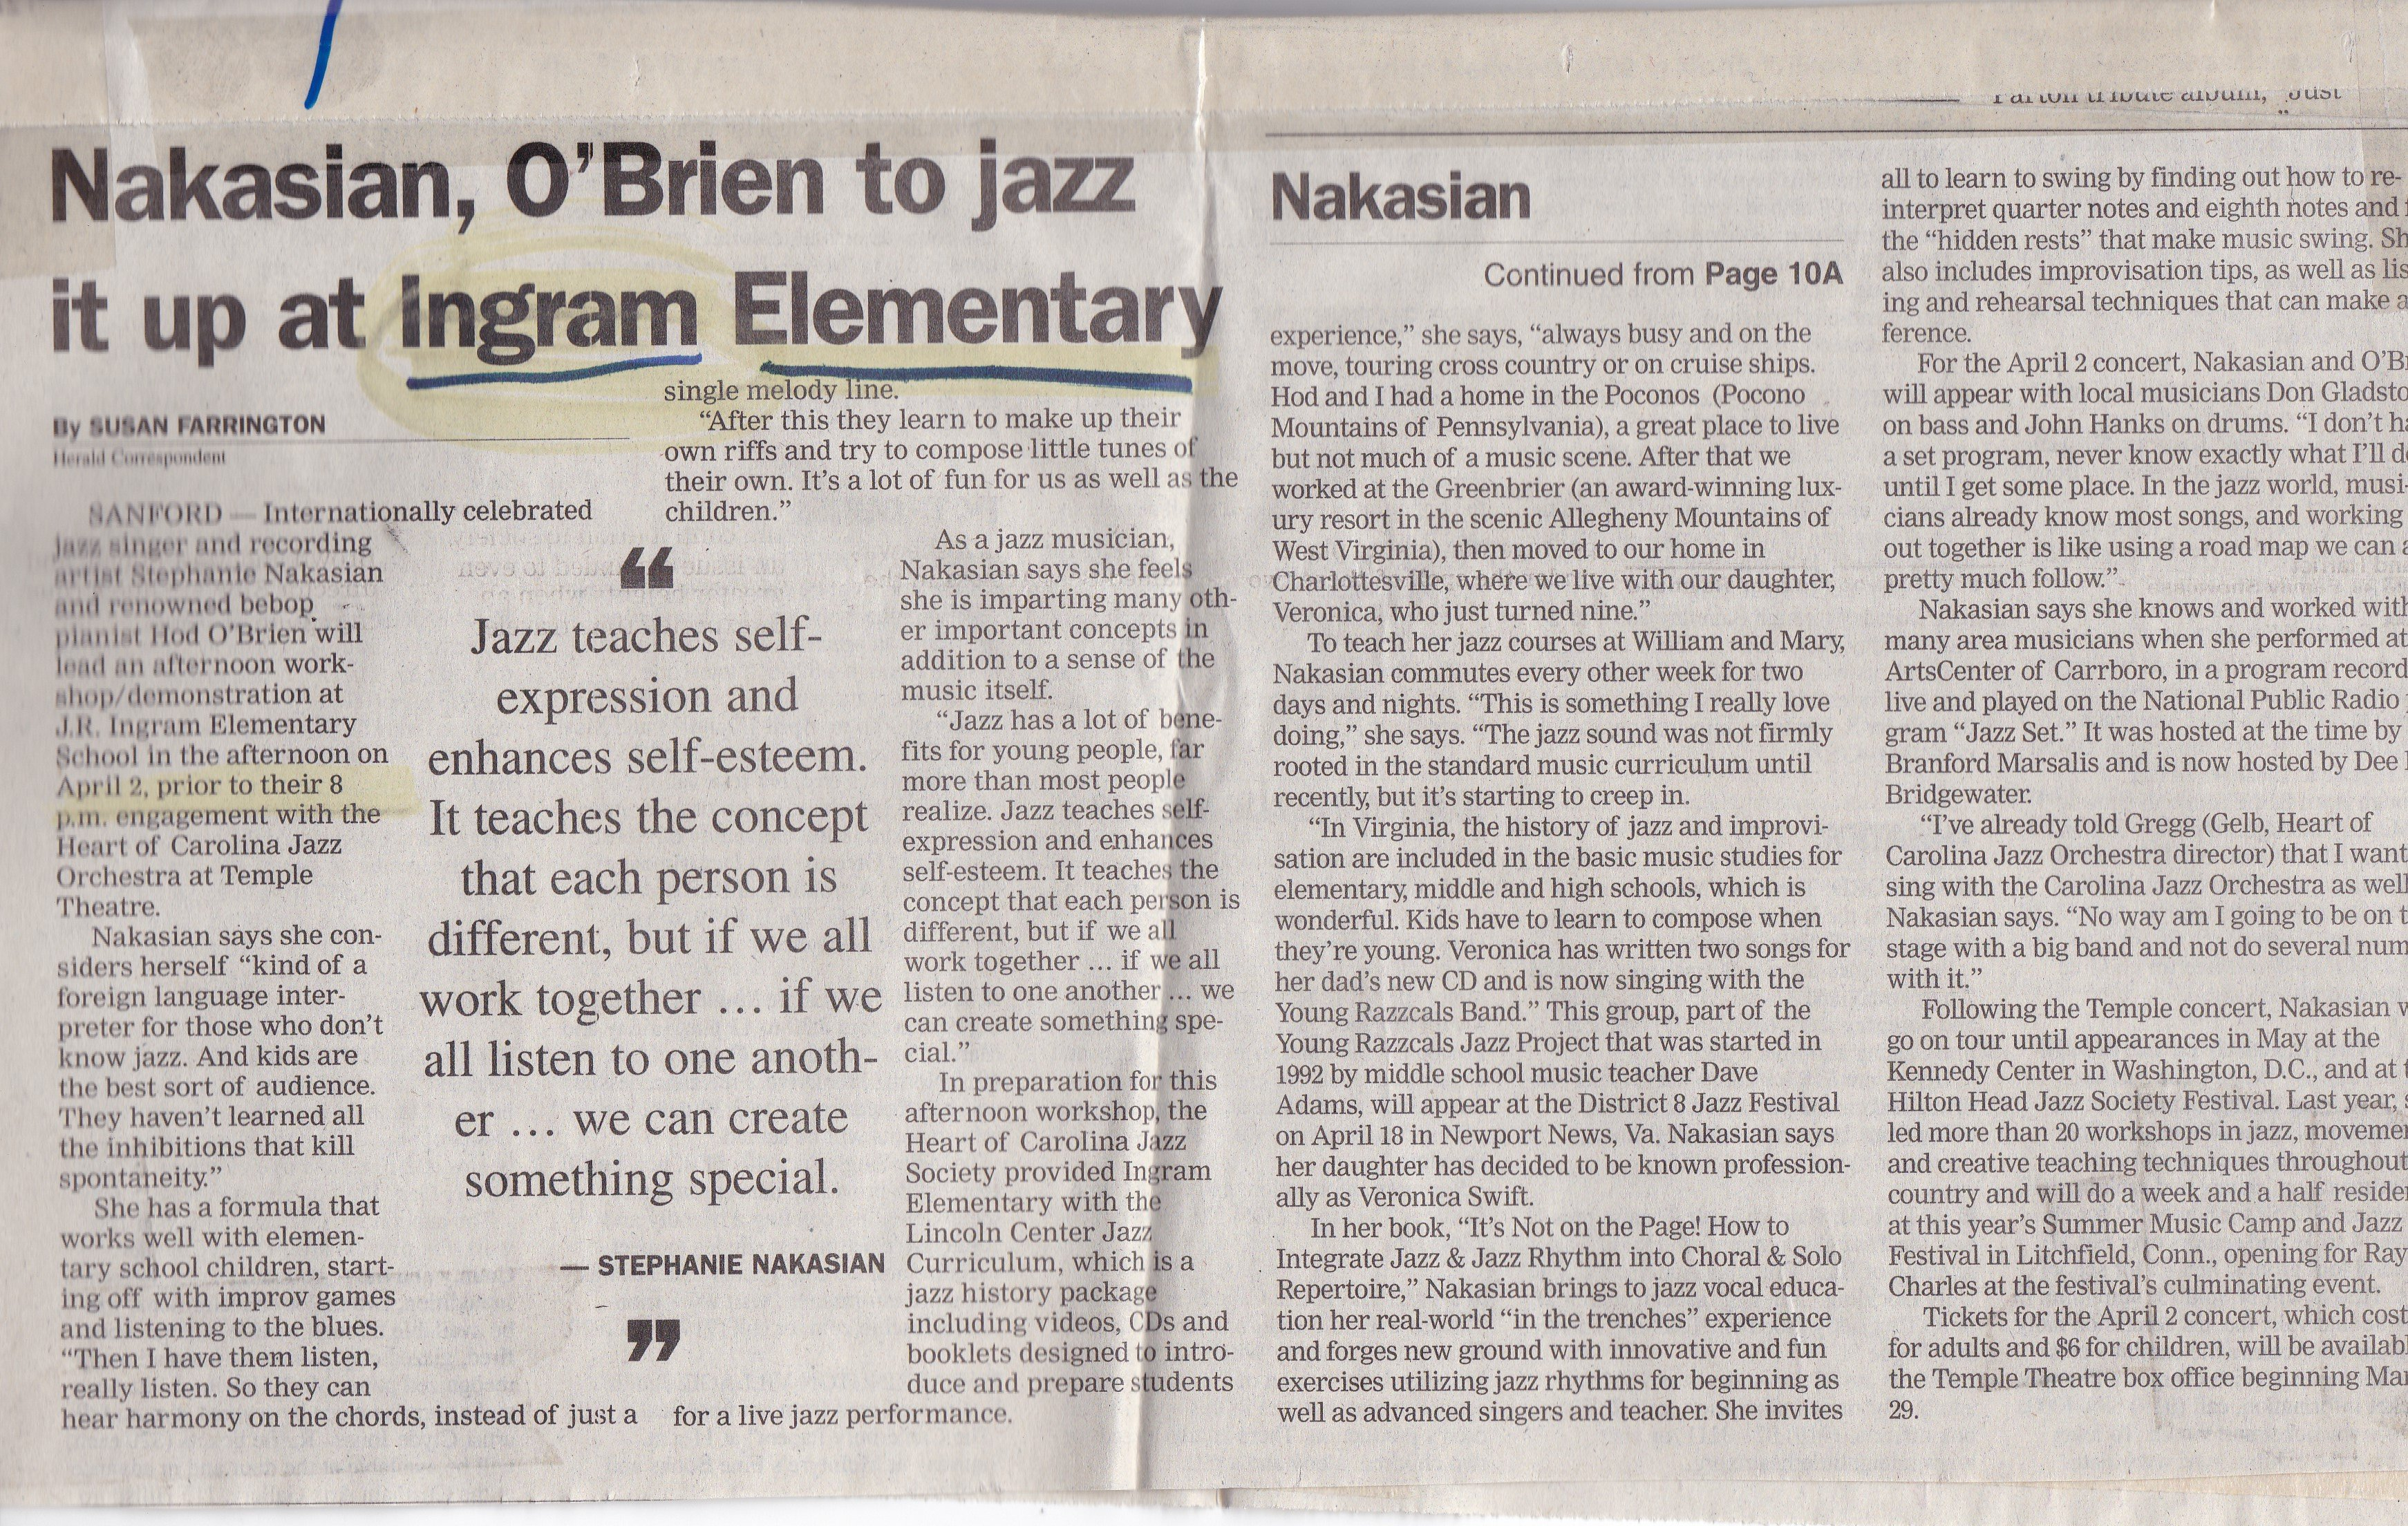 HOCJO-Guest-Stephanie-Nakasian-and-Hod-Obrien-article-pg-2